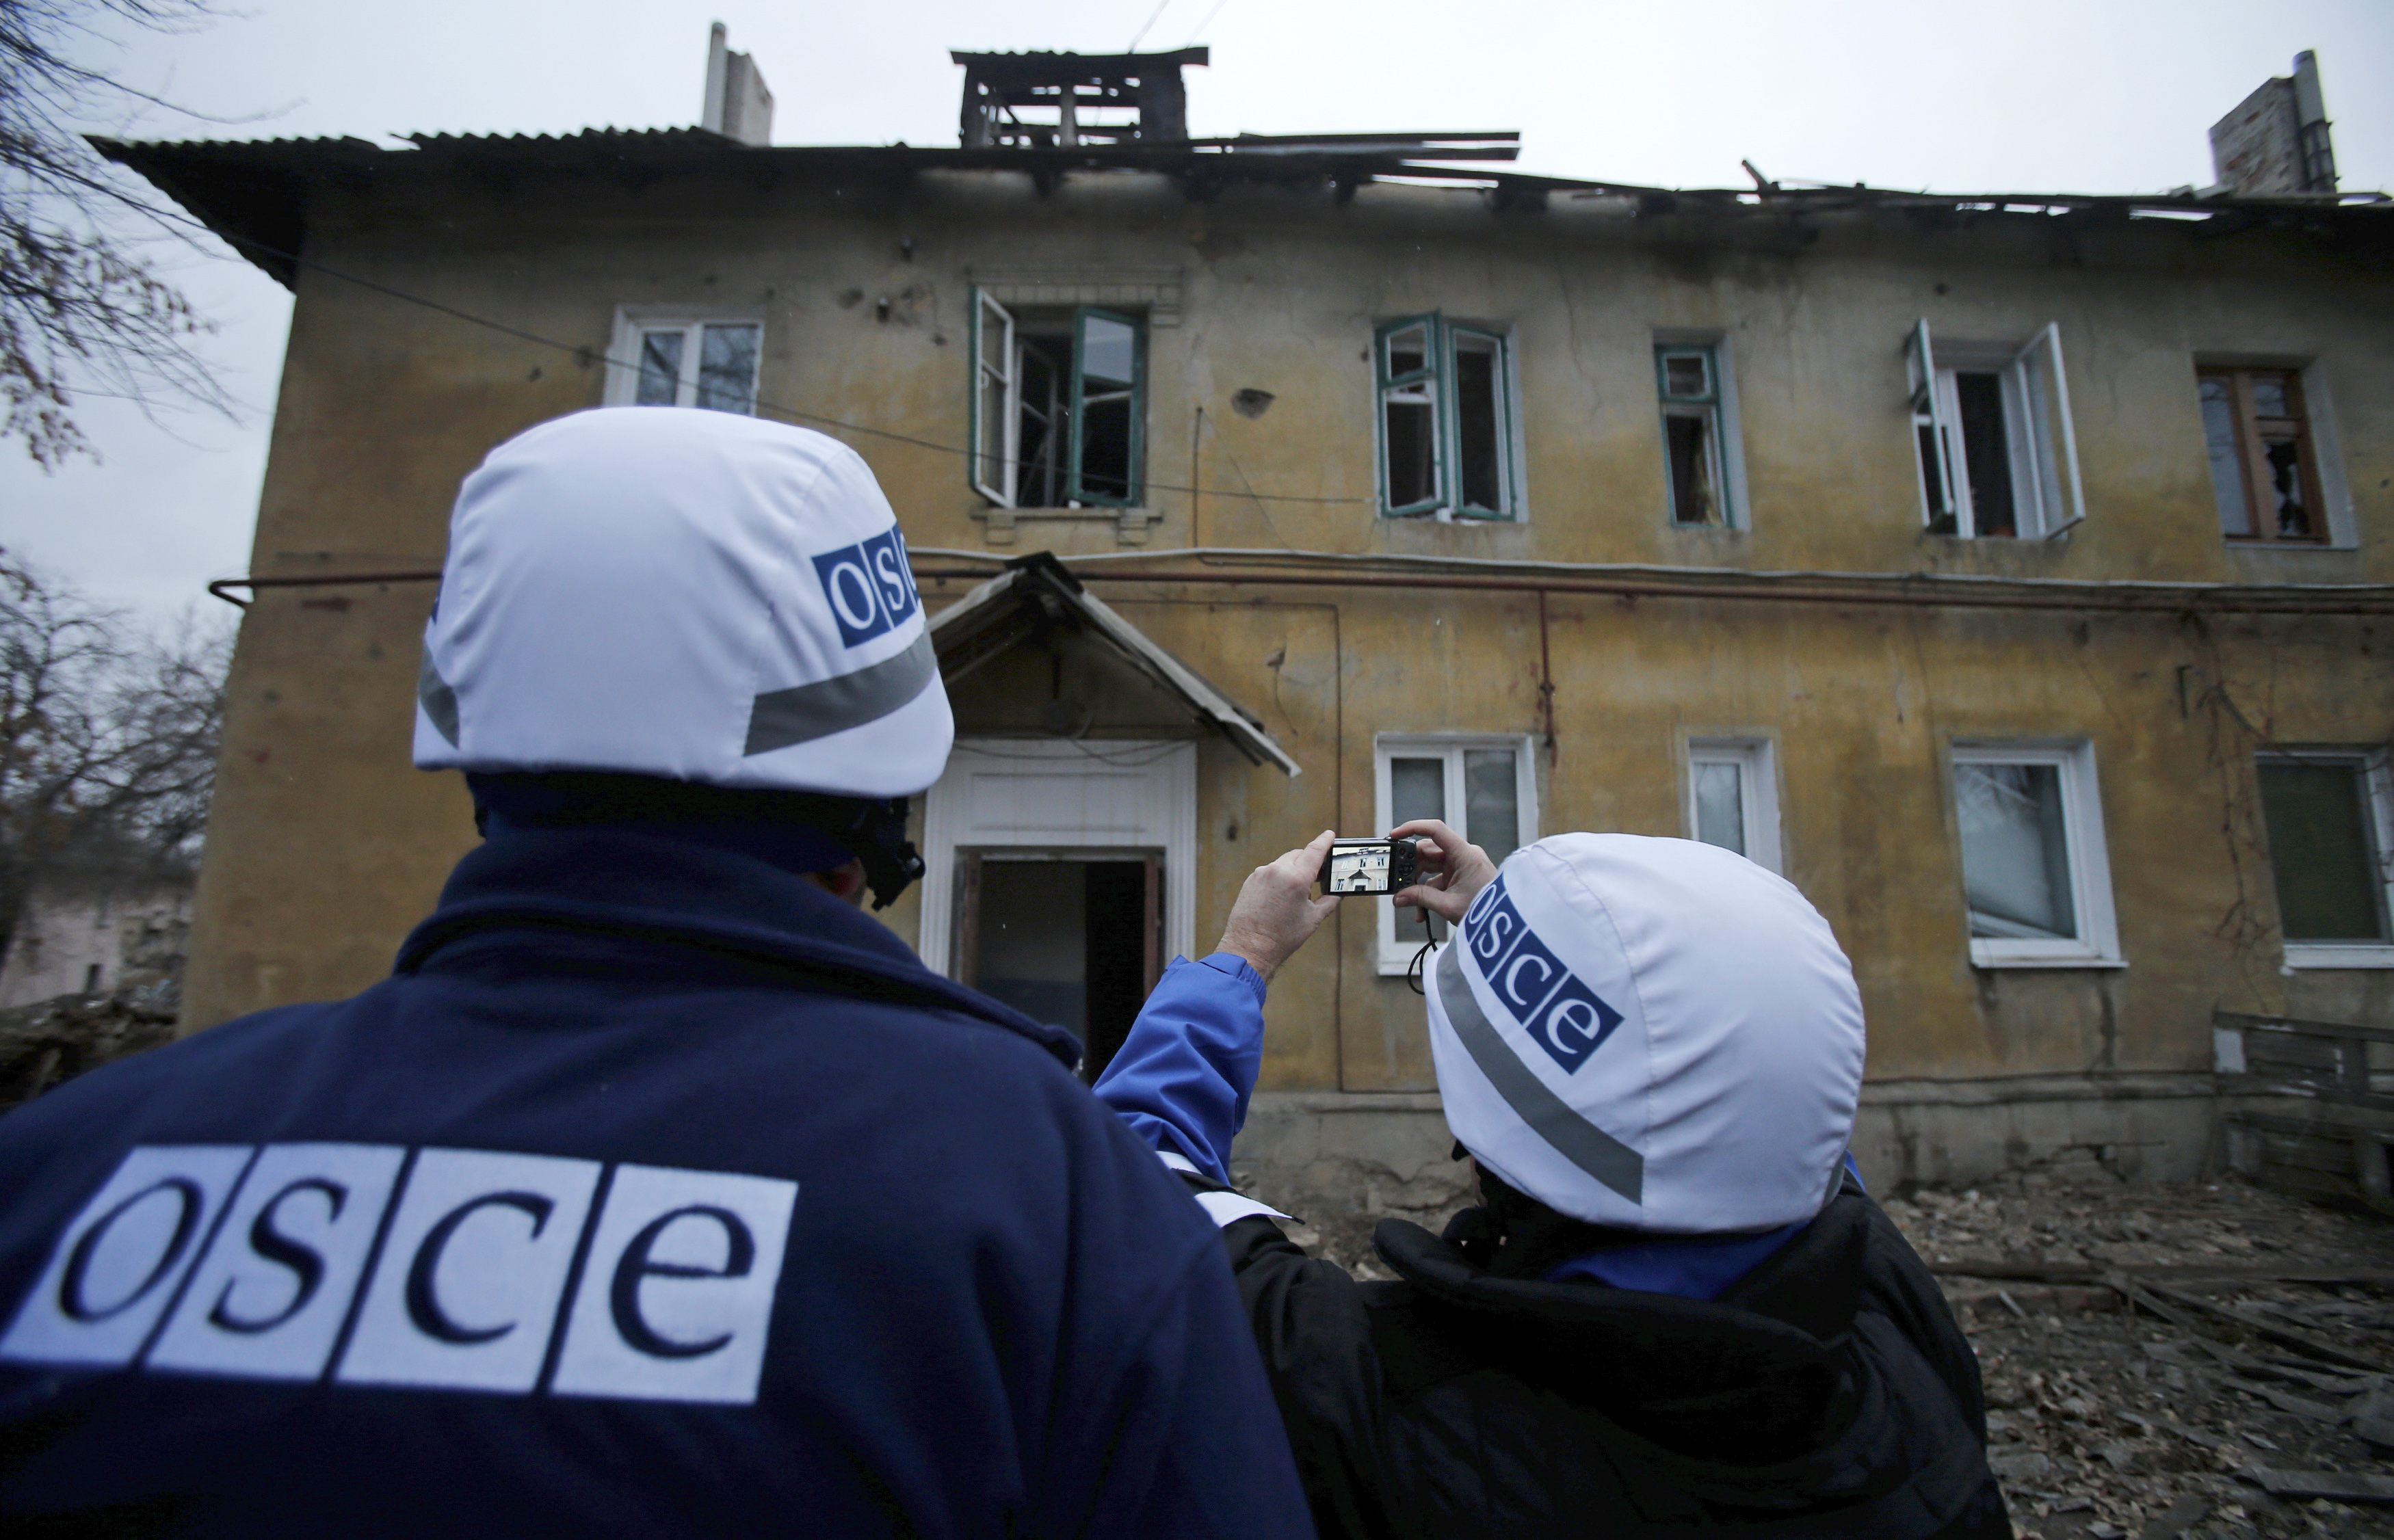 An OSCE investigator takes pictures of a building after it was damaged by recent shelling in the western part of Donetsk, eastern Ukraine